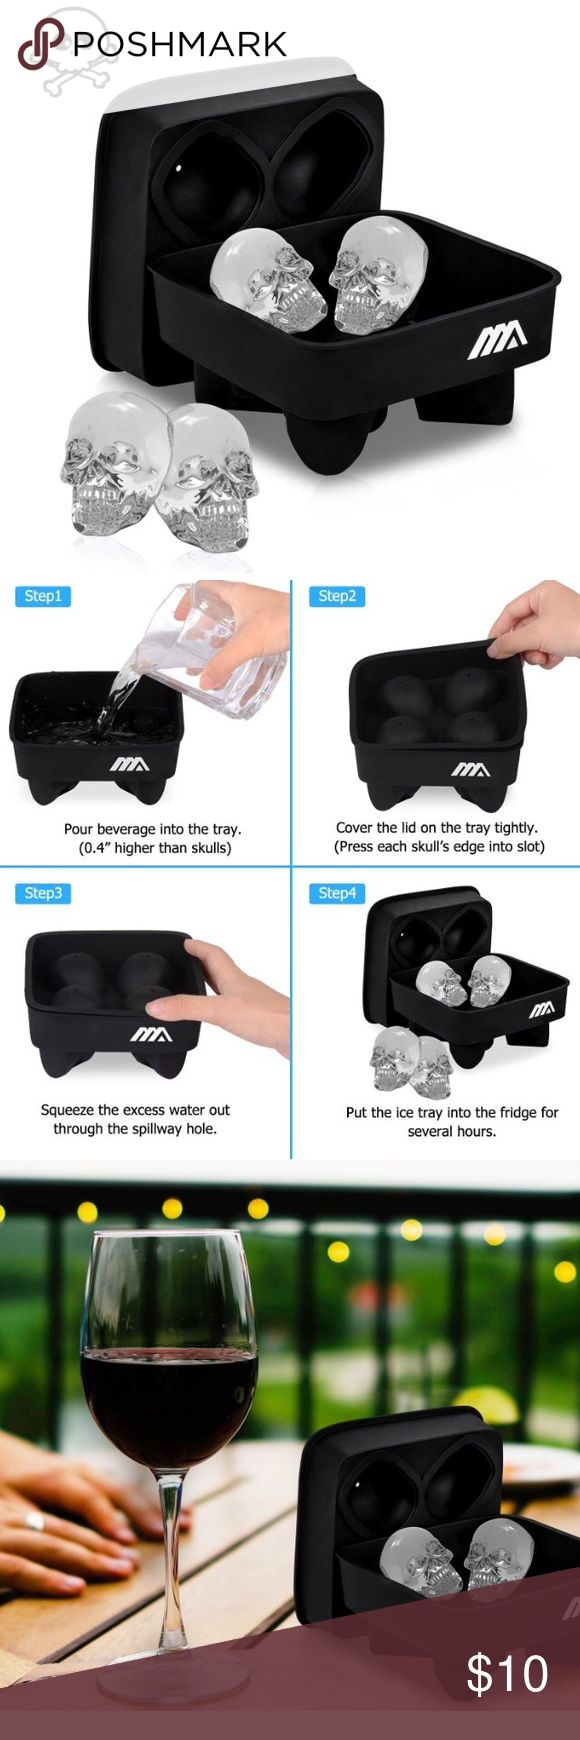 NEW 3D Skull Silicone Ice Mold (Black) ✅NEW ✅black ✅3D Skull Silicone Ice Mold ✅Makes Four Giant Ice Skulls ✅Easy Release Ice Cube Trays for Chilling Bourbon, Whiskey, Cocktail, Beverages and More Other